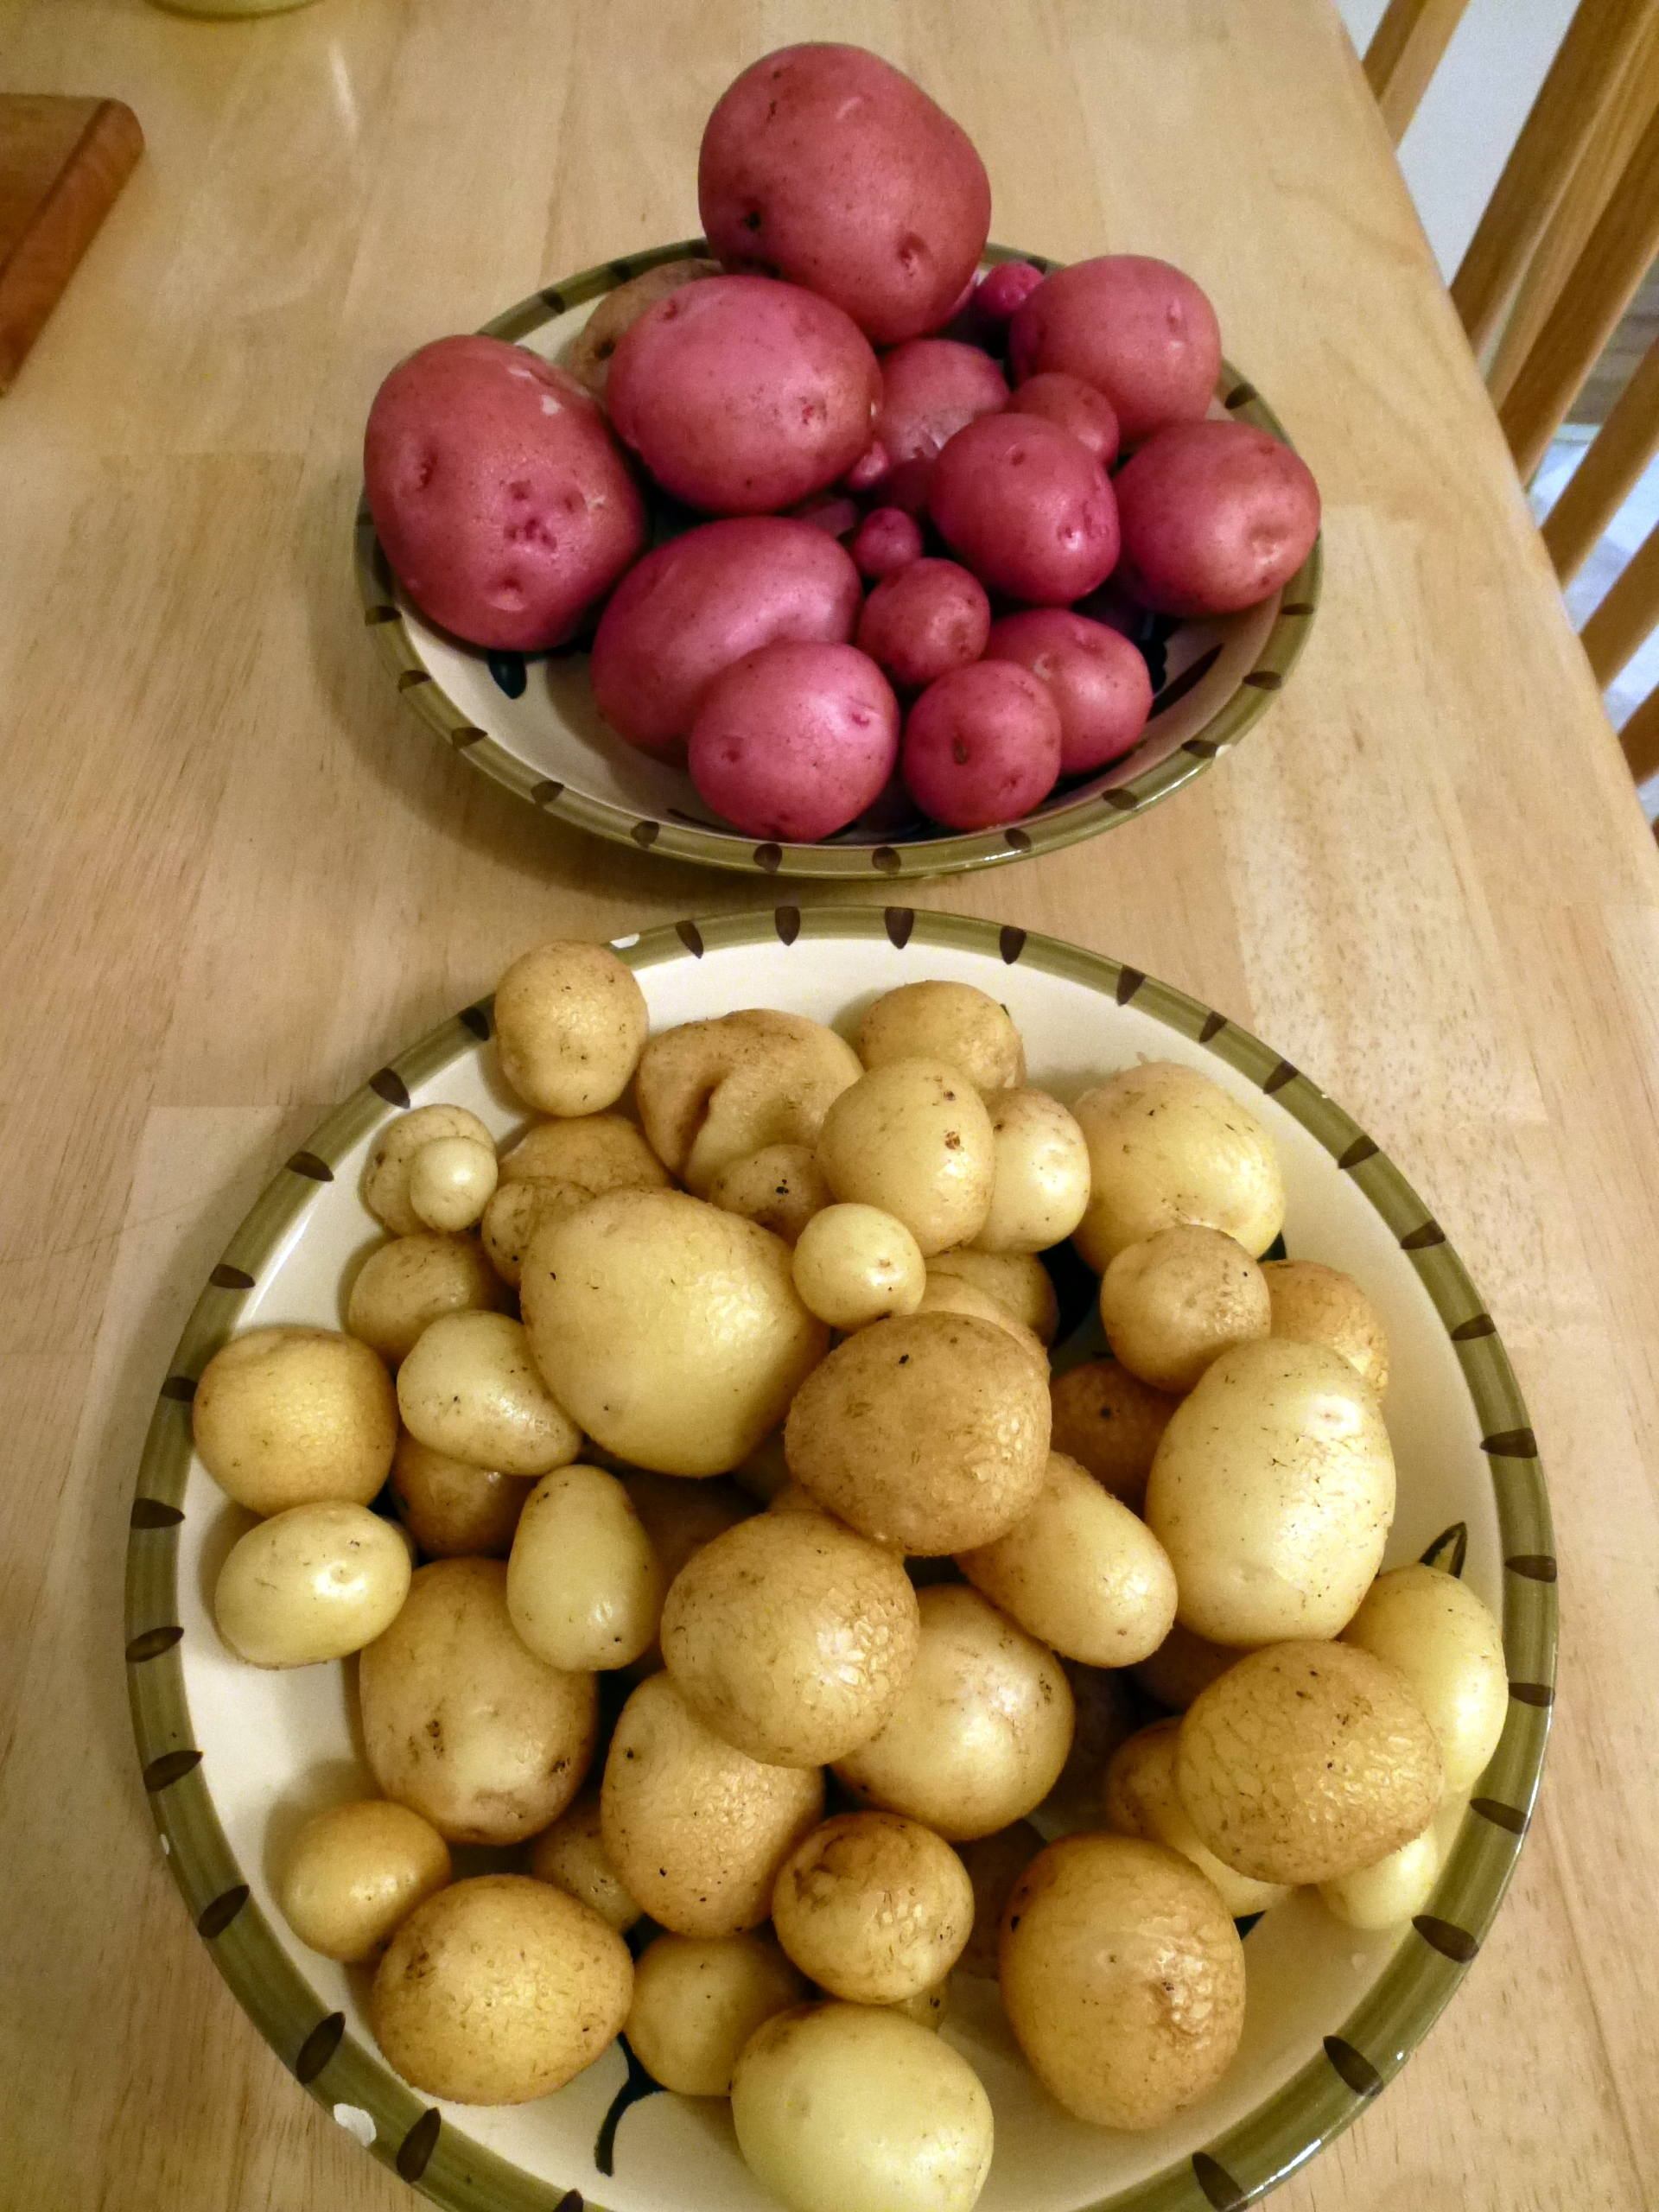 My almost 7 lbs of potatoes in 2014